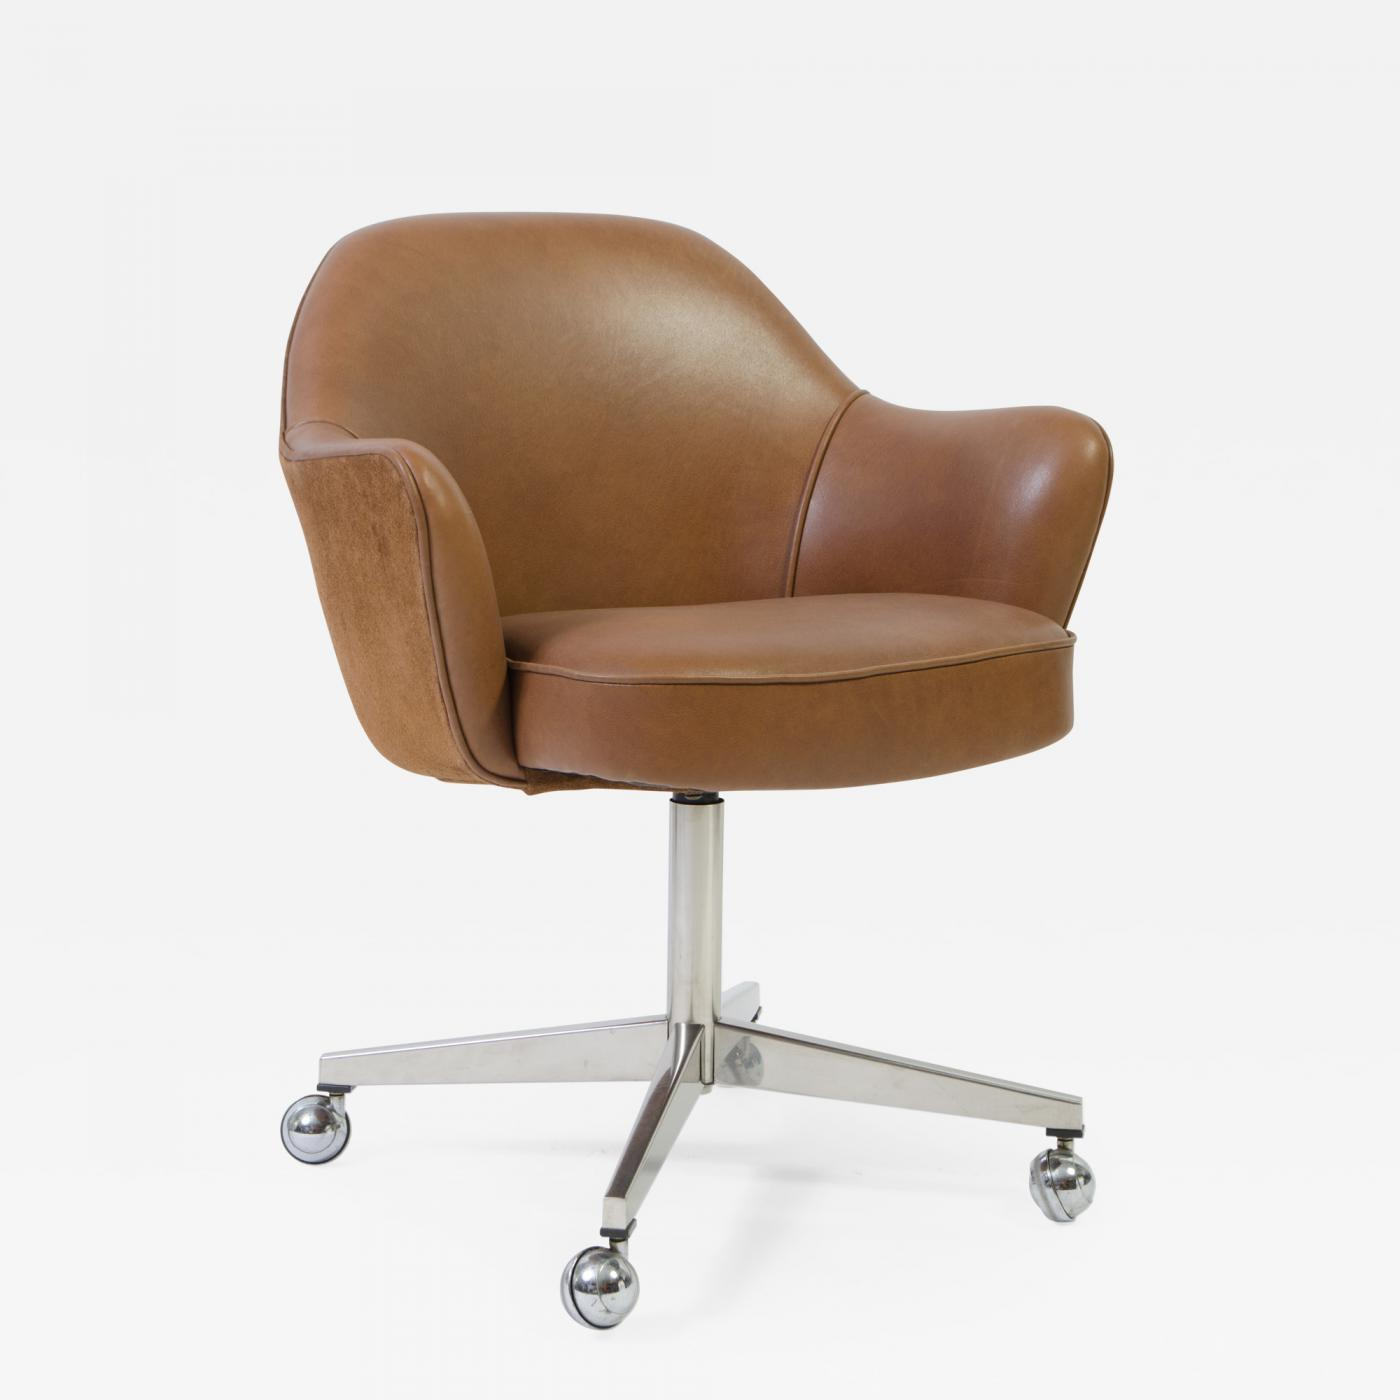 Saddle Office Chair Eero Saarinen Knoll Desk Chair In Contrasting Saddle Leather Suede